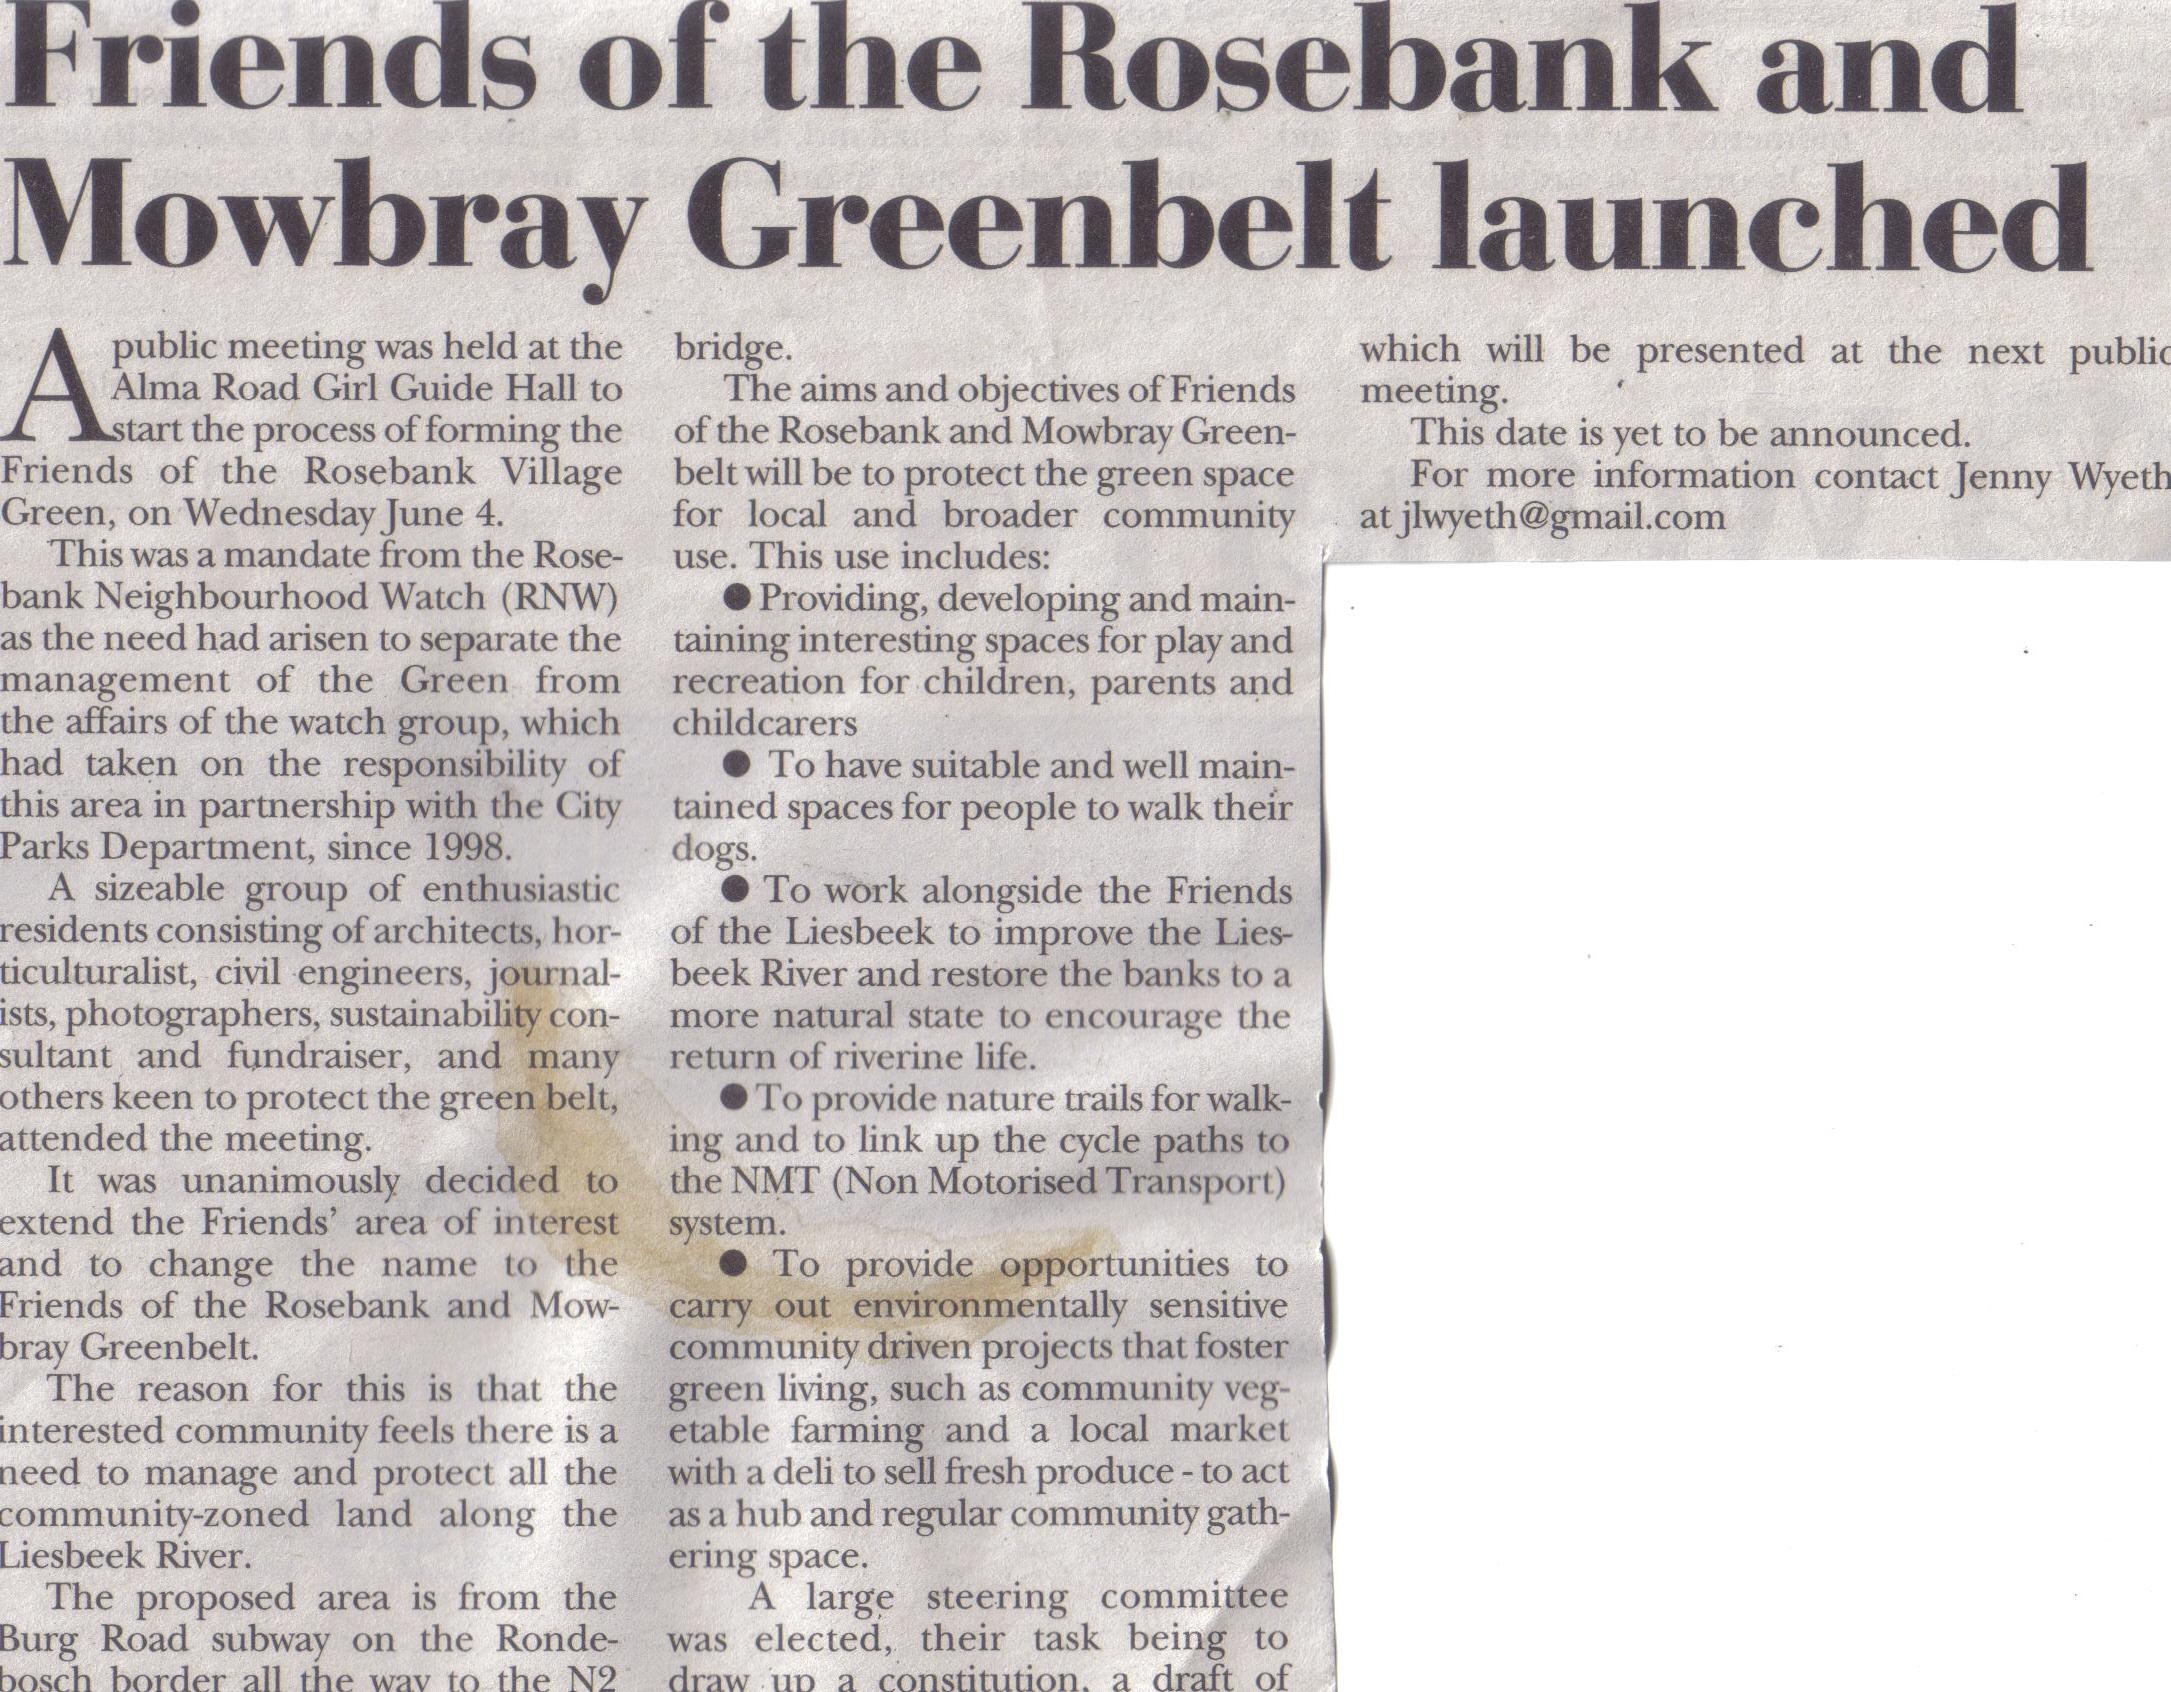 Friends of the Rosebank and Mowbray Greenbelt launched (Tatler, 12 June 2014)